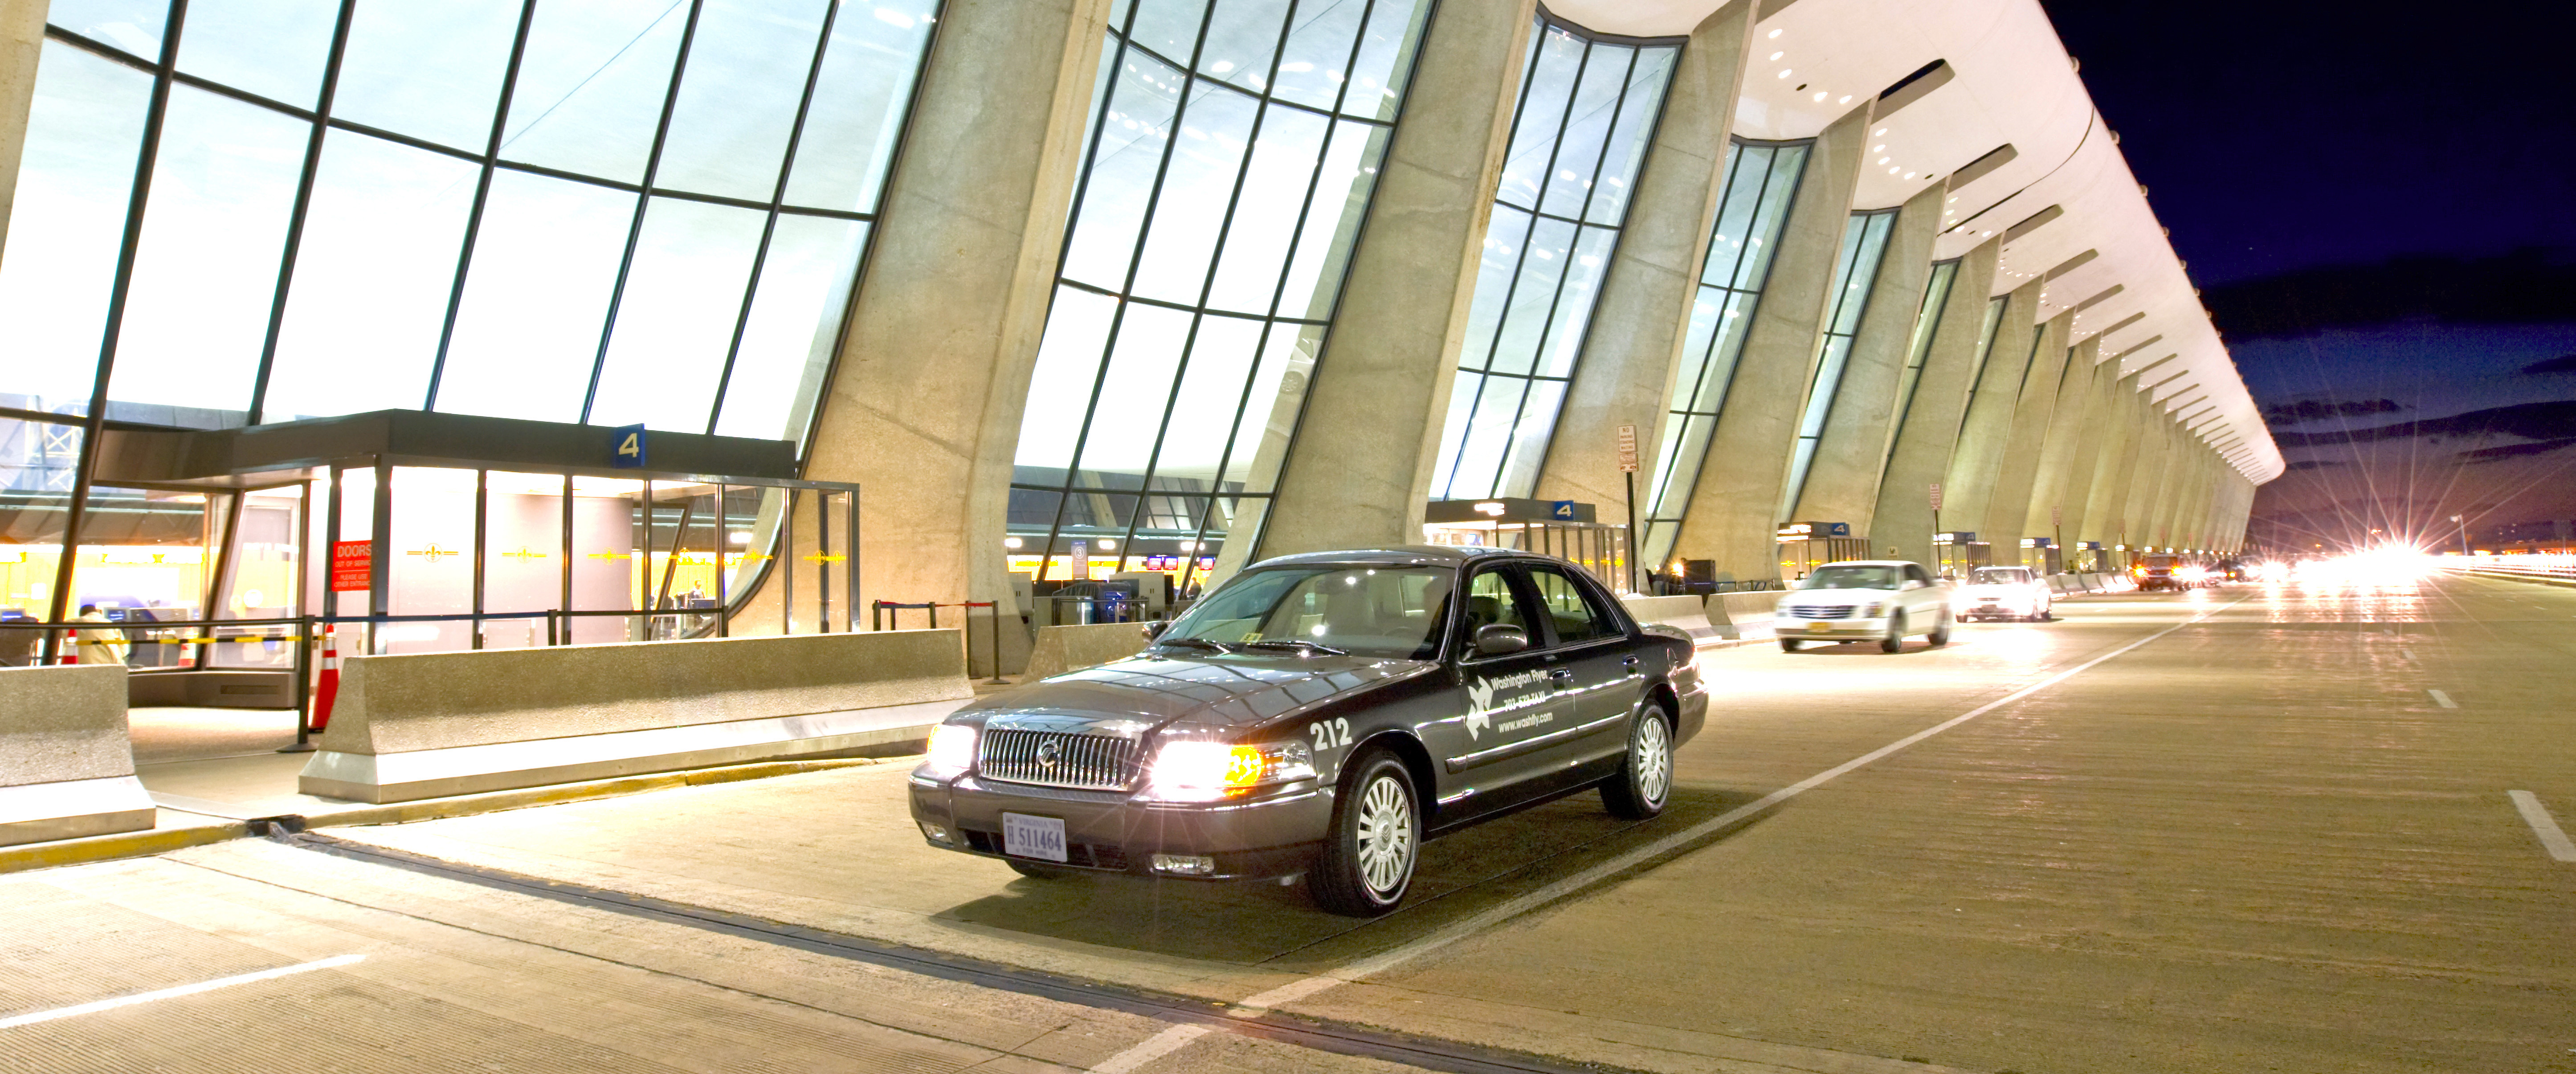 5 Tips To Booking Airport Taxi